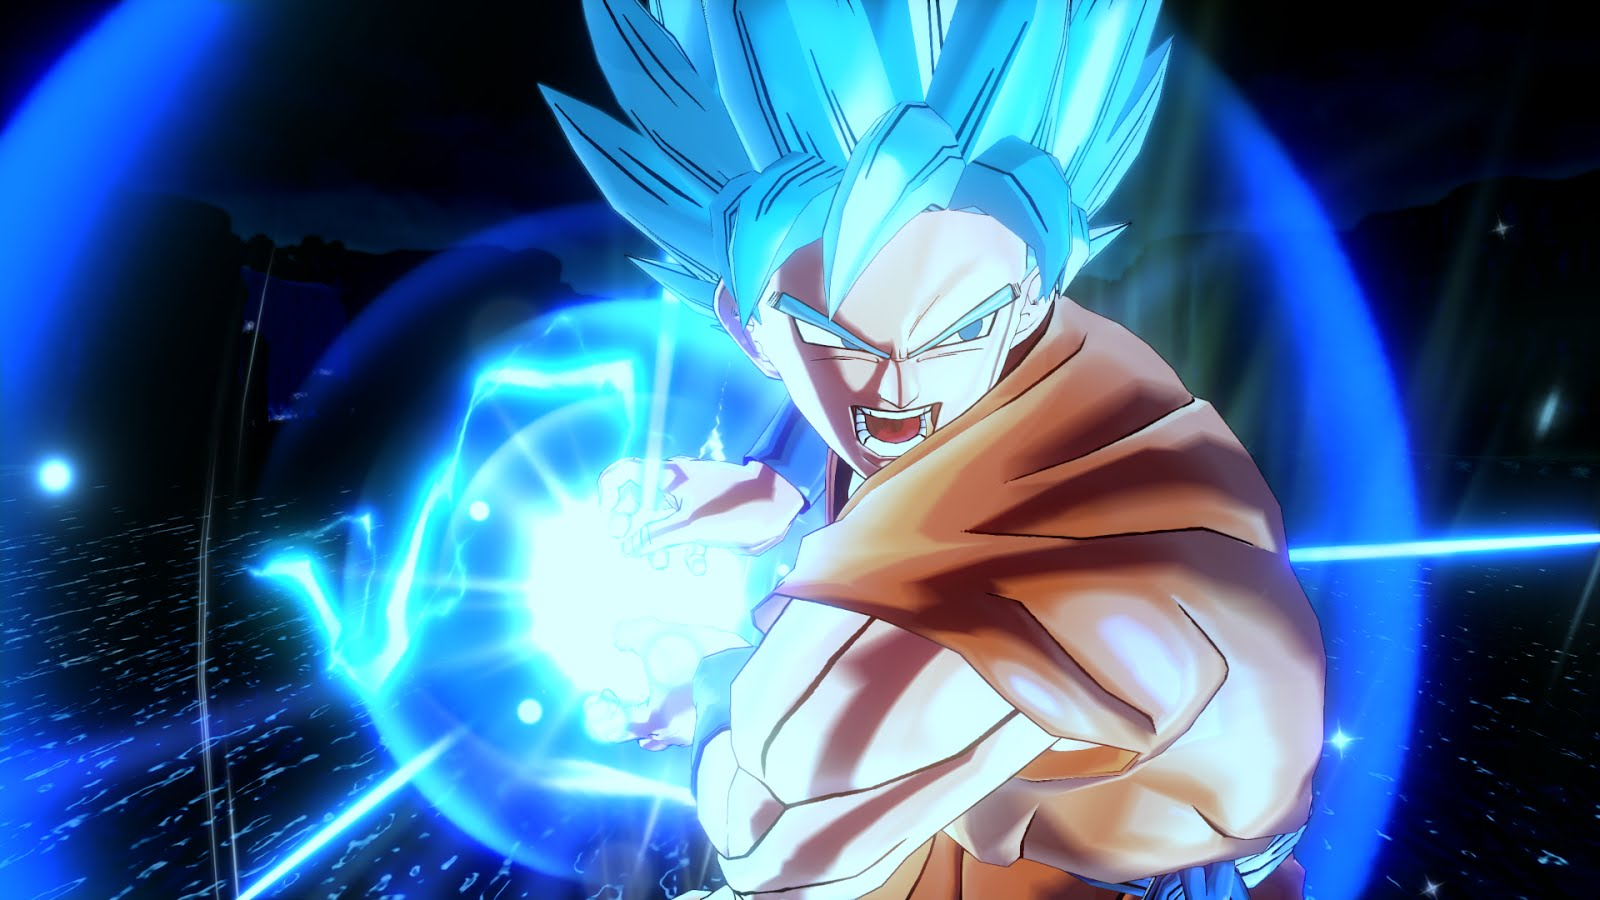 Dragon Ball Xenoverse 2 on the PS4 | It's time to go Super